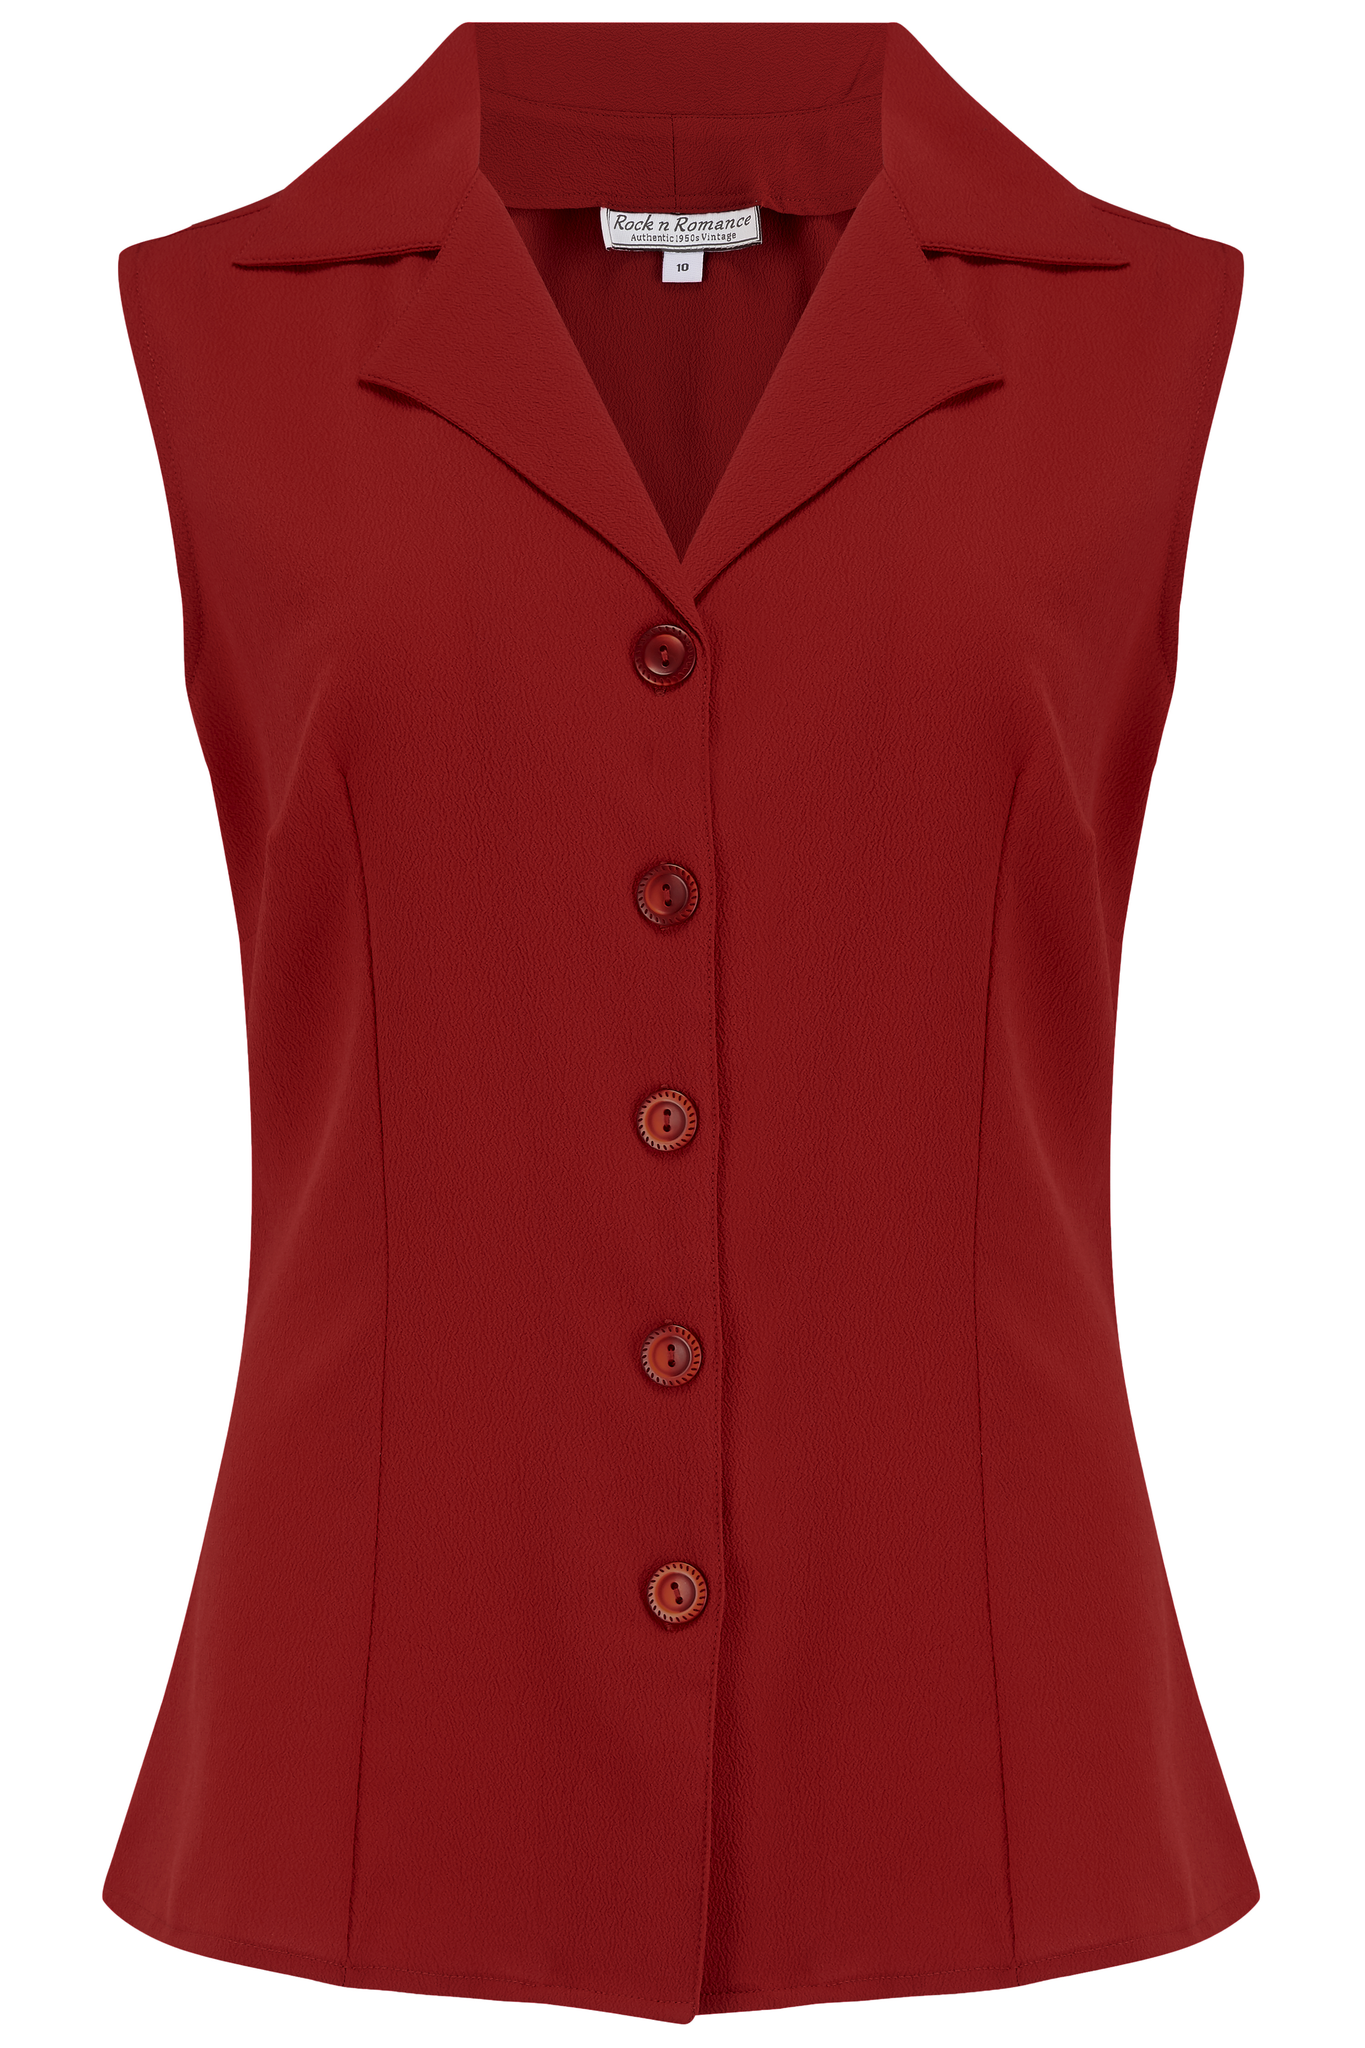 "Rock n Romance The ""Gladys"" Sleeveless Summer Blouse in Solid Wine, Classic Vintage 1950s Inspired Style - RocknRomance Clothing"